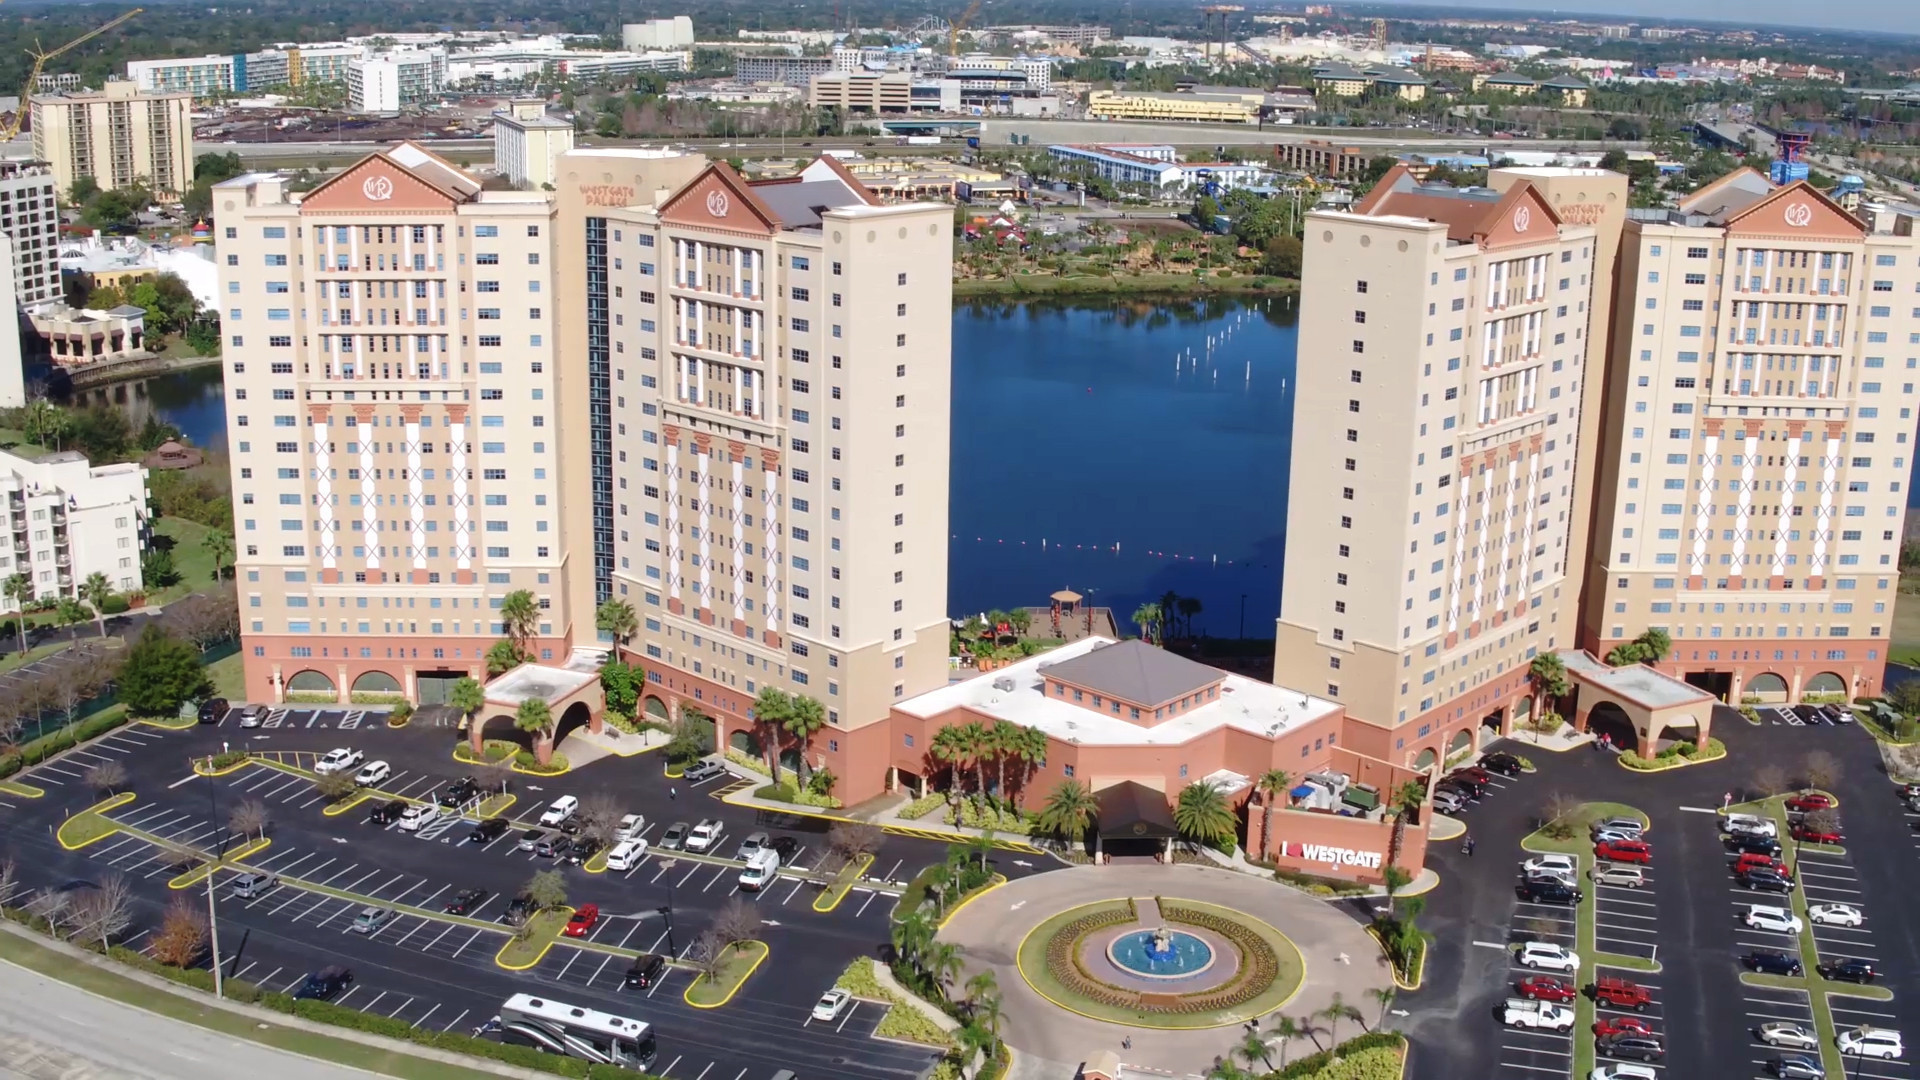 Resorts in Orlando Florida | Resorts on International Drive Orlando, FL | Westgate Palace Resort